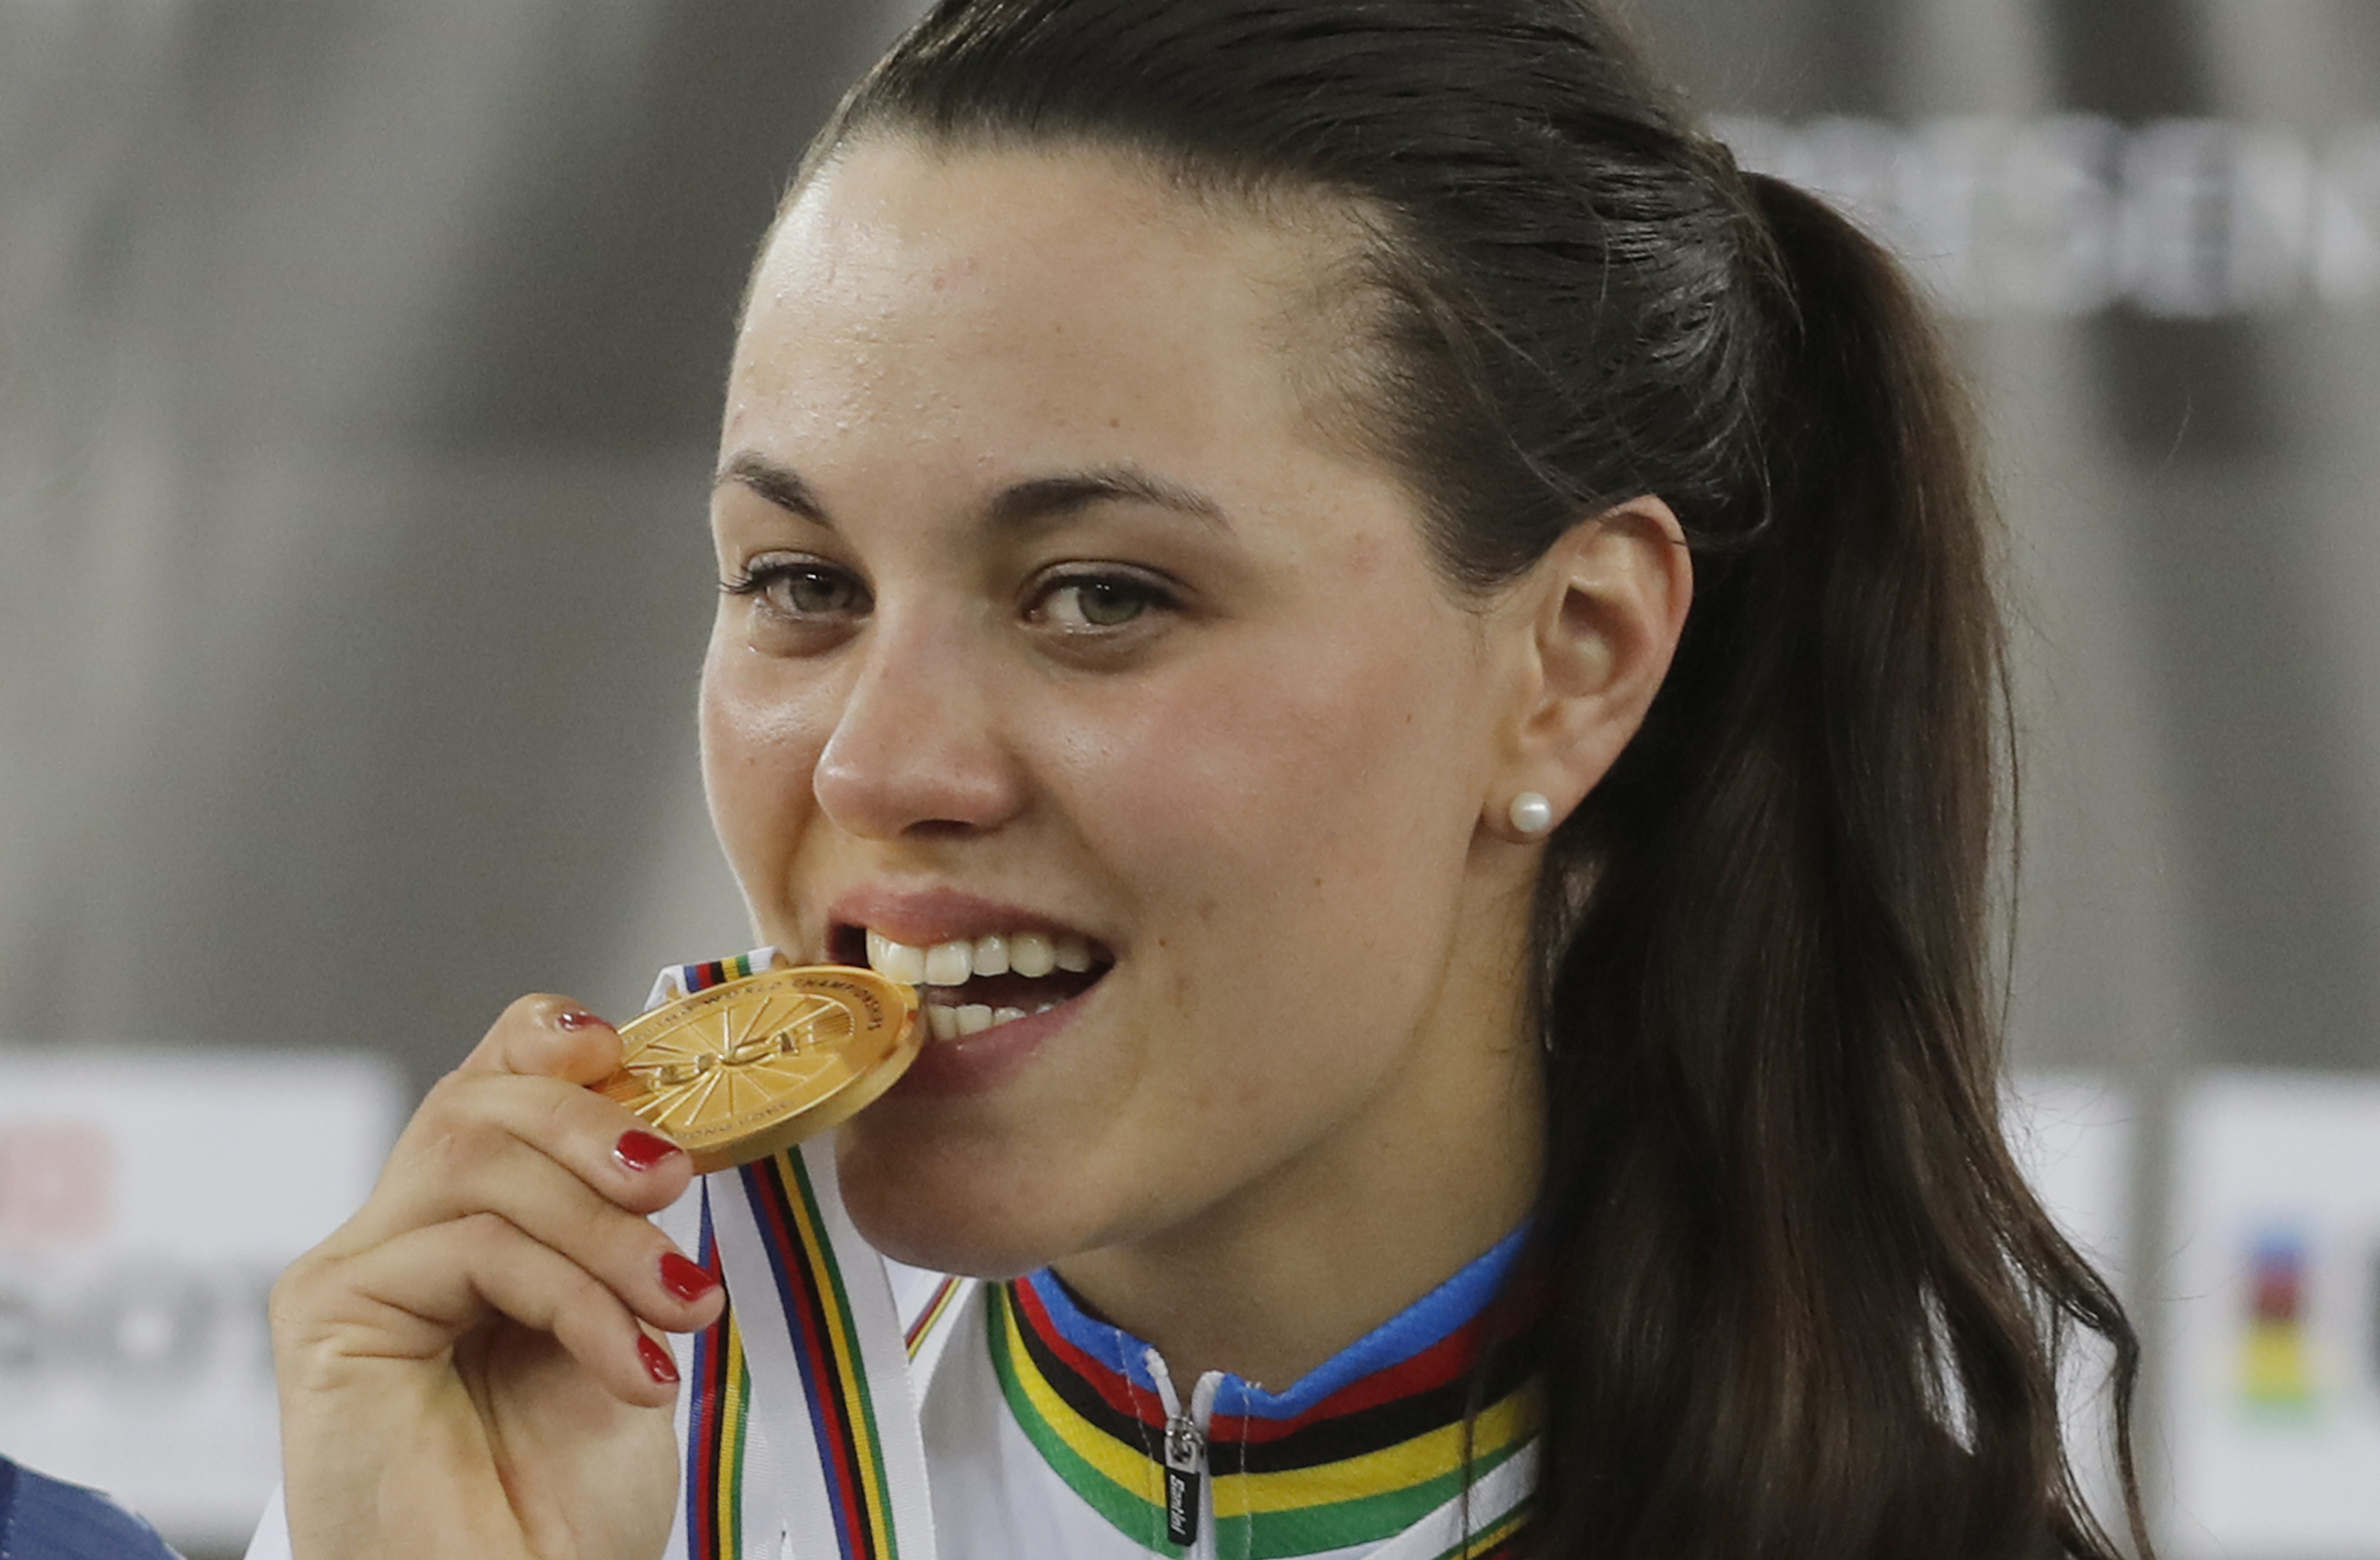 Italy's Rachele Barbieri bites her gold medal on the podium after winning the women's scratch race at the World Track Cycling championships in Hong Kong, Wednesday, April 12, 2017. (AP Photo/Kin Cheung)